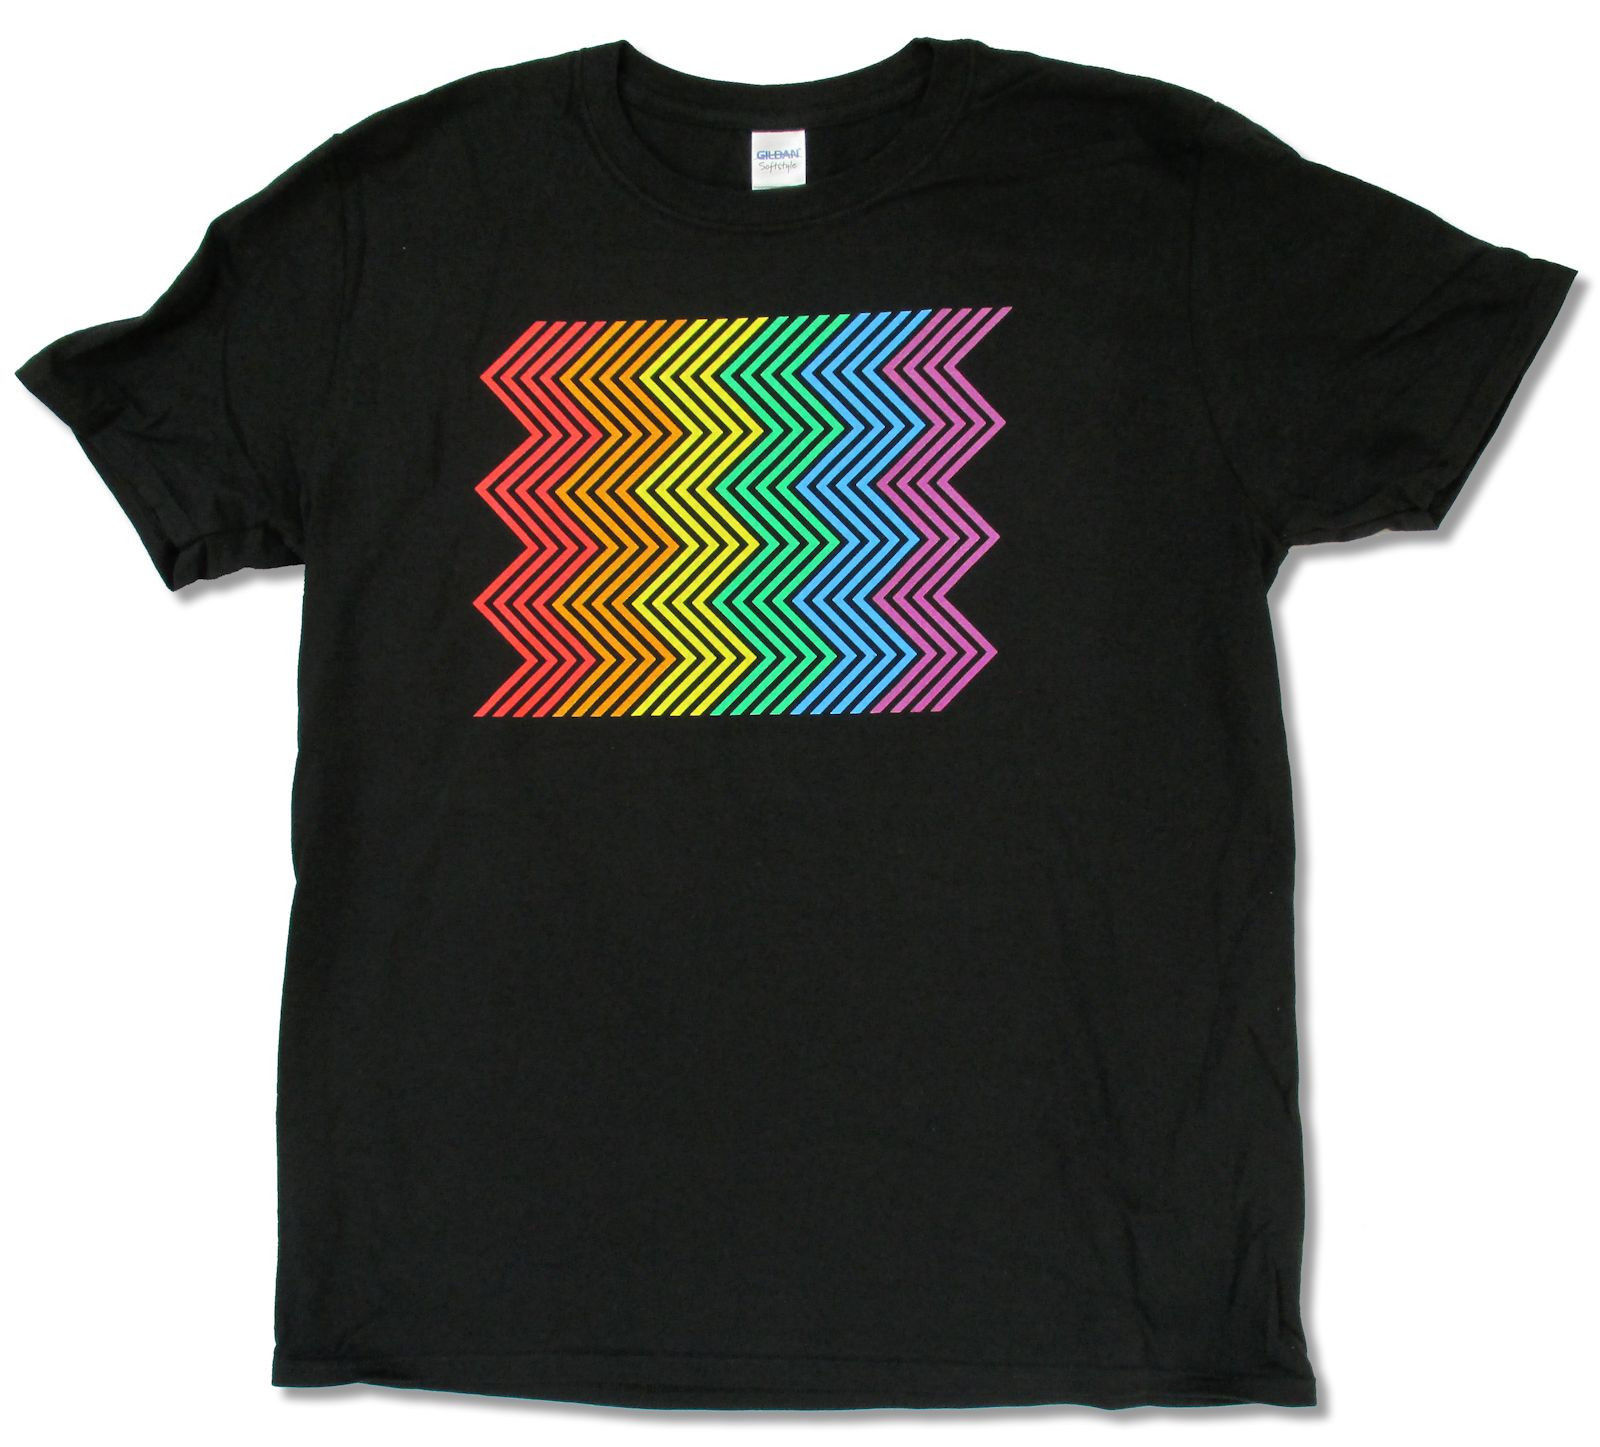 PET SHOP BOYS ELECTRIC RAINBOW TOUR 2014 BLACK T-SHIRT NEW OFFICIAL ADULT BAND New T-Shirt Men Fashion T Shirts Top Tee